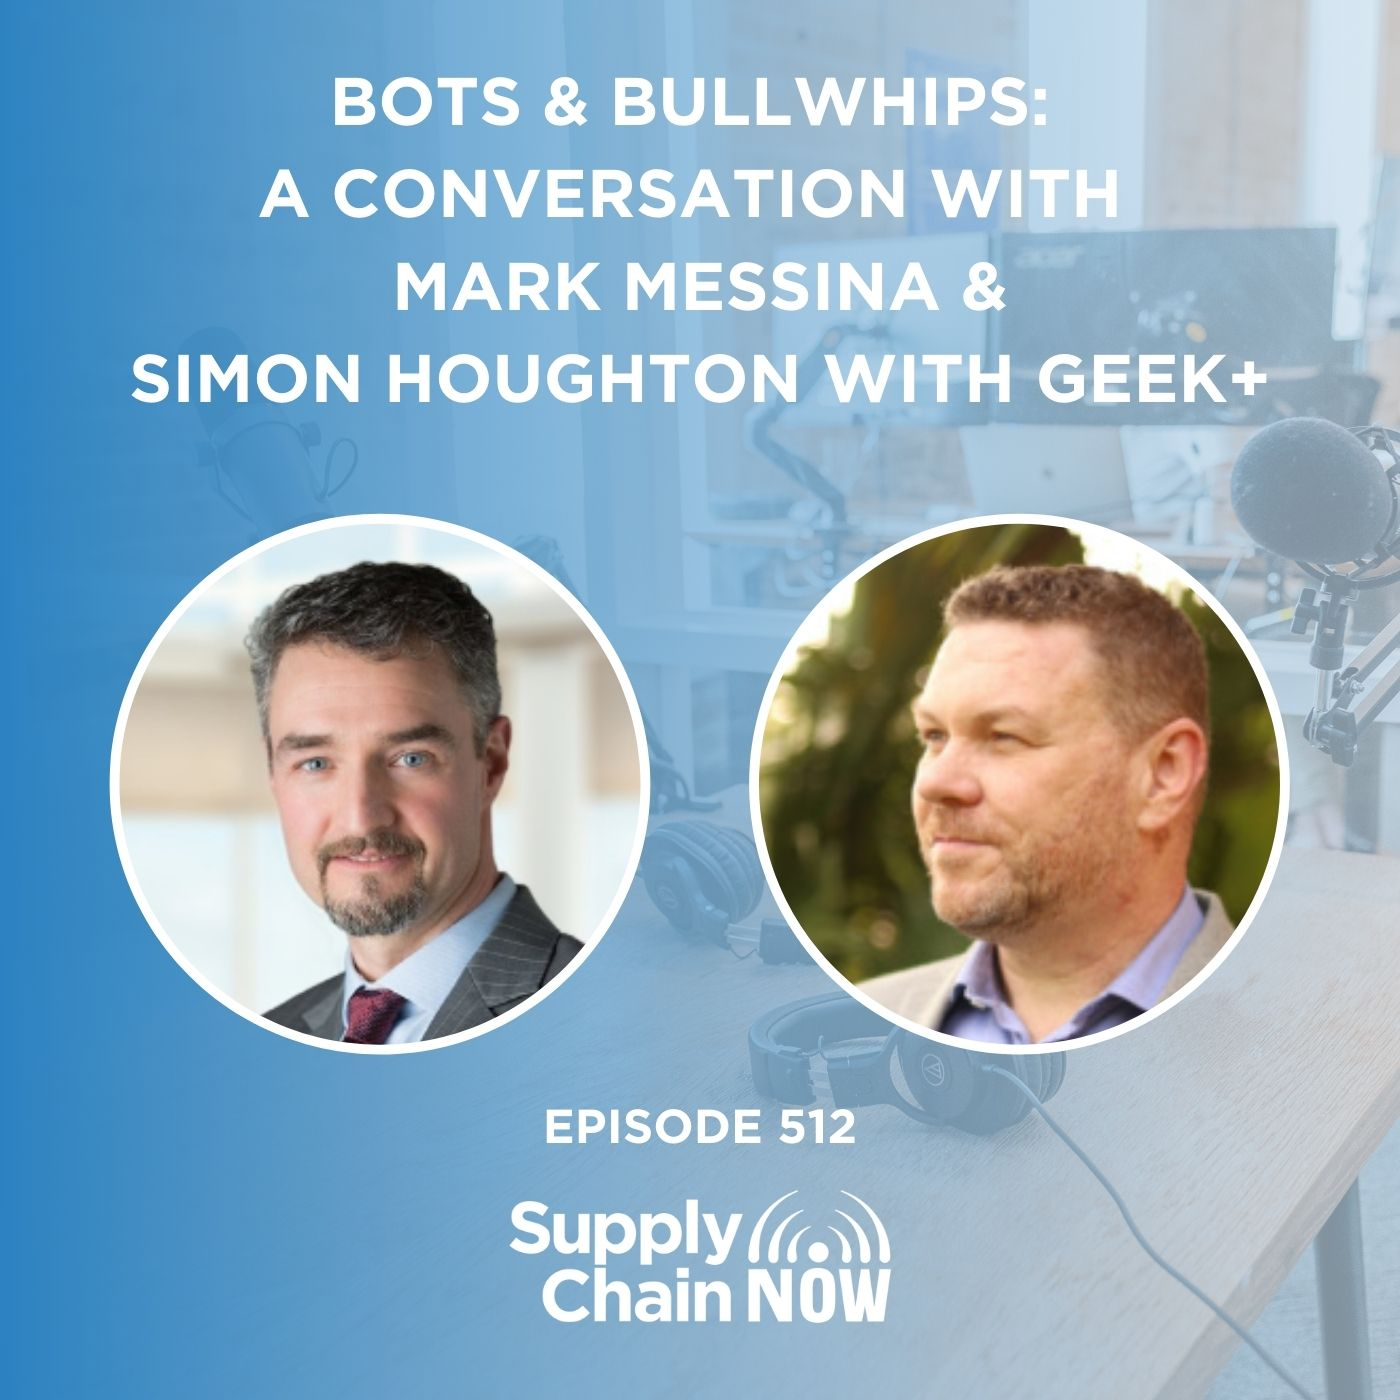 Bots & Bullwhips: A Conversation with Mark Messina & Simon Houghton with Geek+